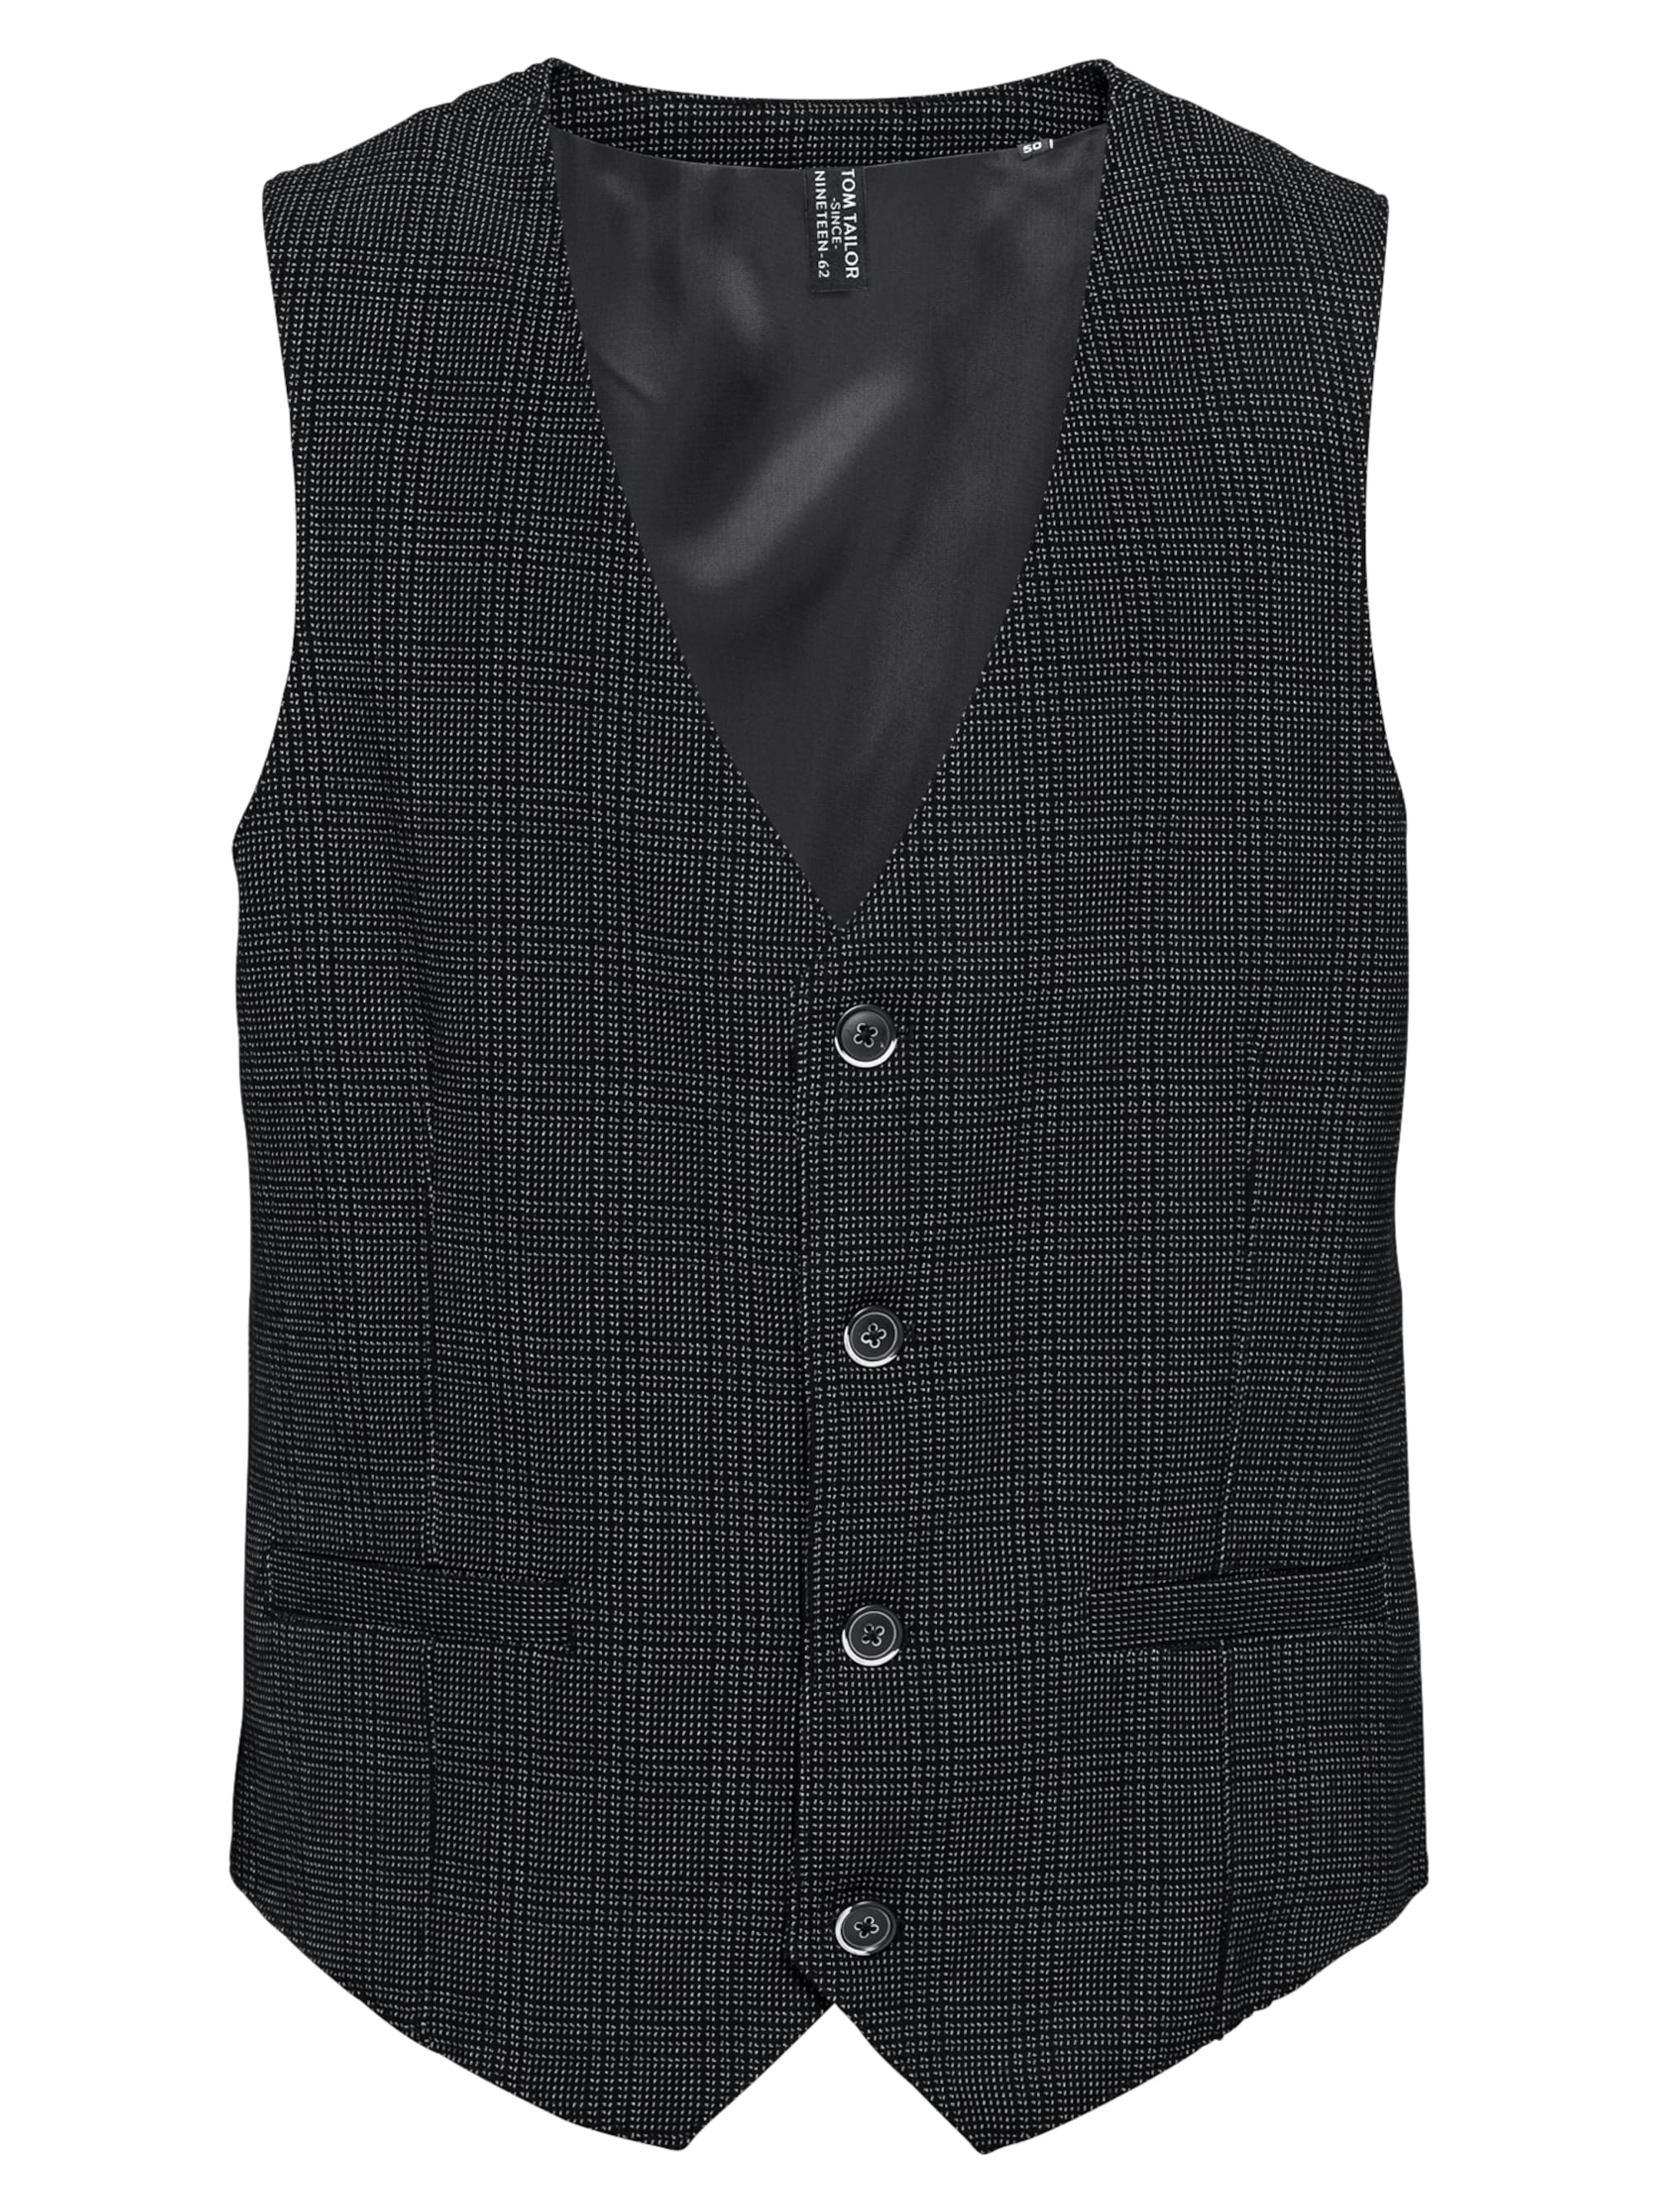 Image of Weste ´structure pattern vest´